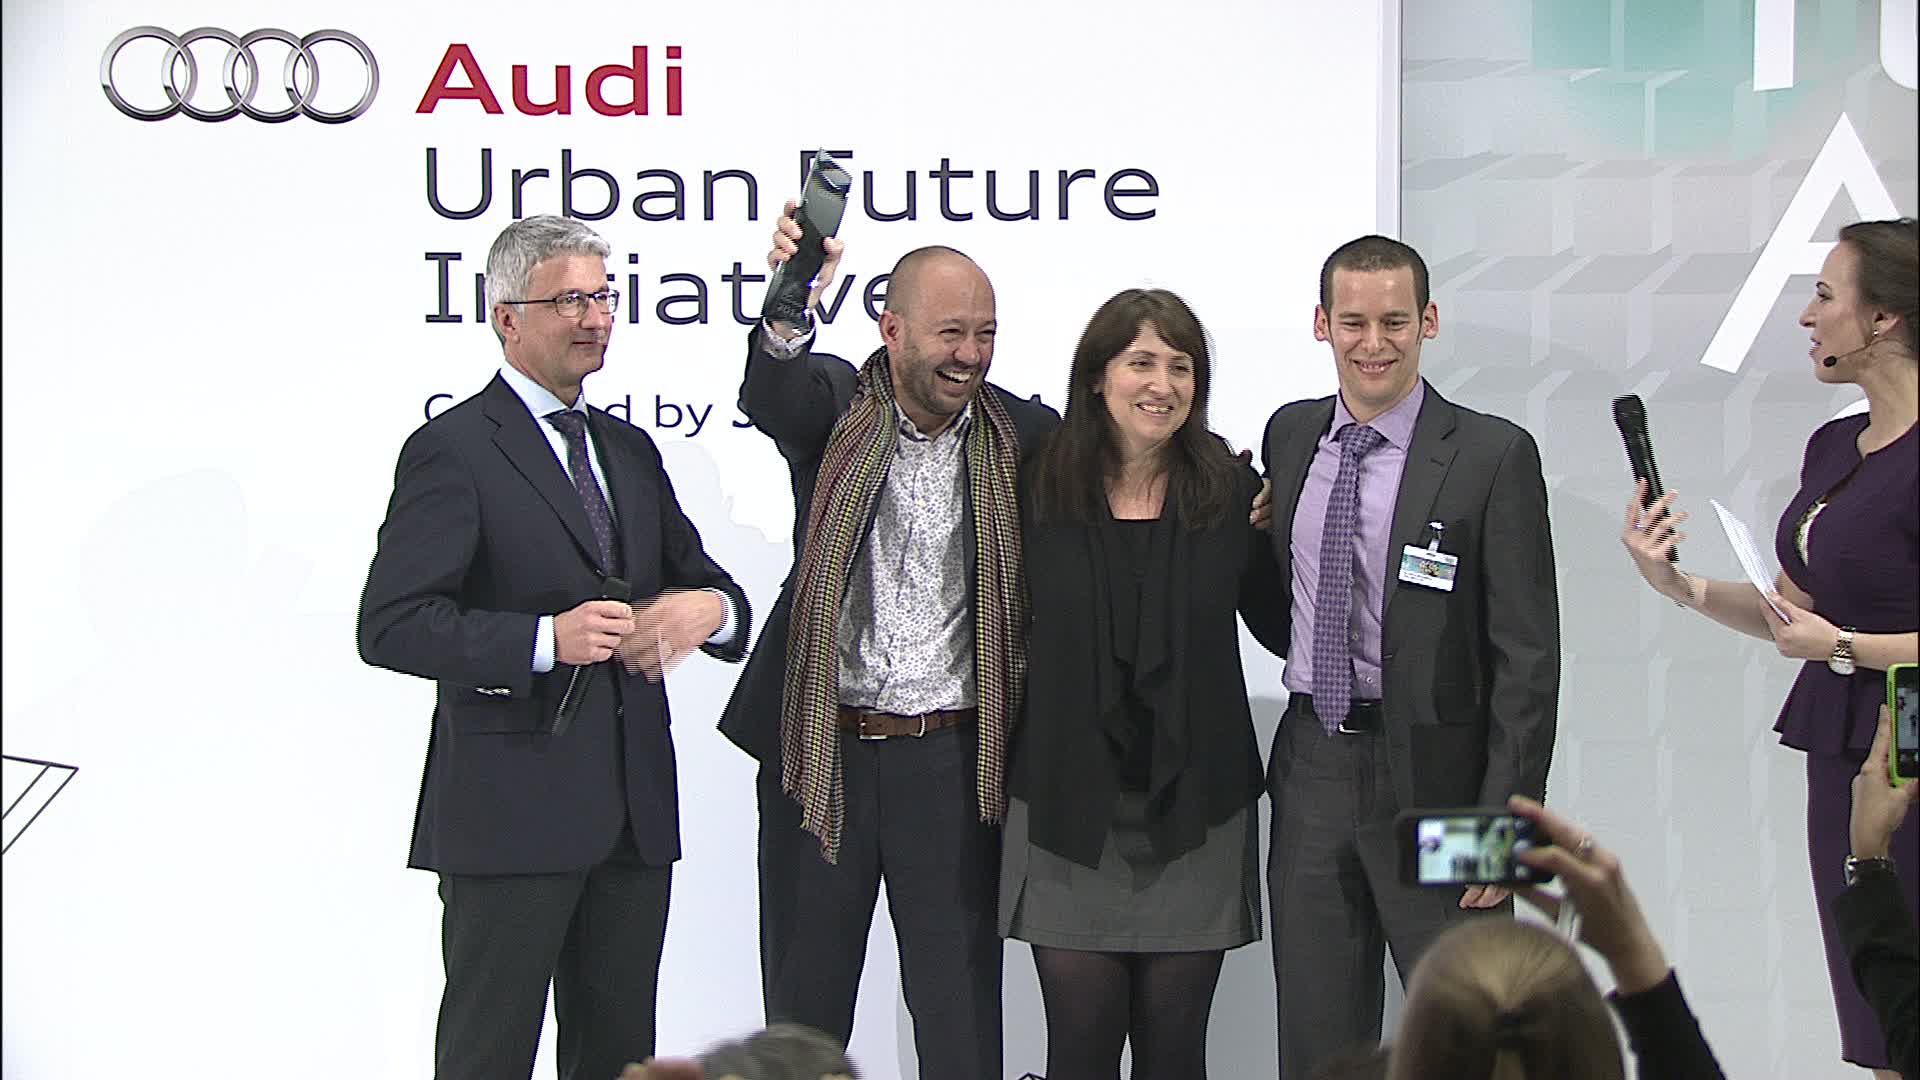 Audi Urban Future Award - Award Ceremony 2014